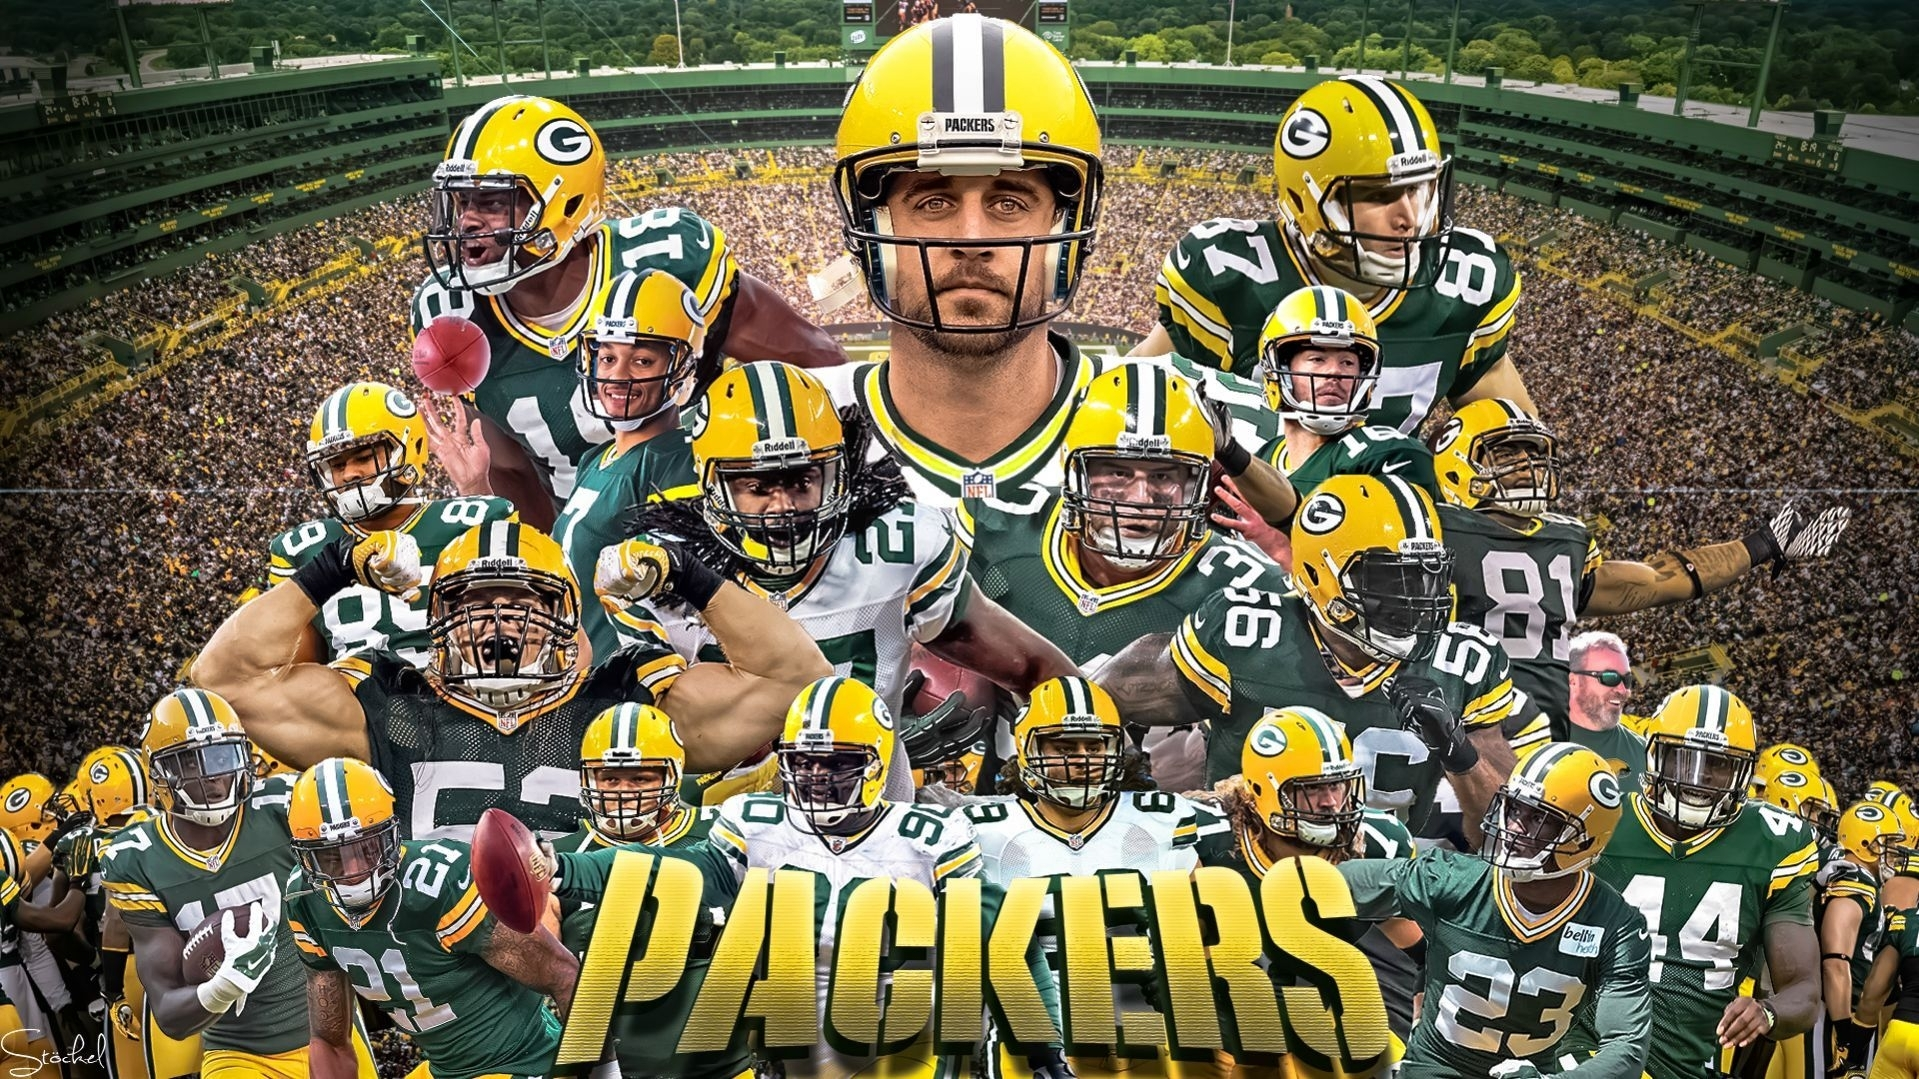 green bay packers wallpapers wallpaper | greenbay packers